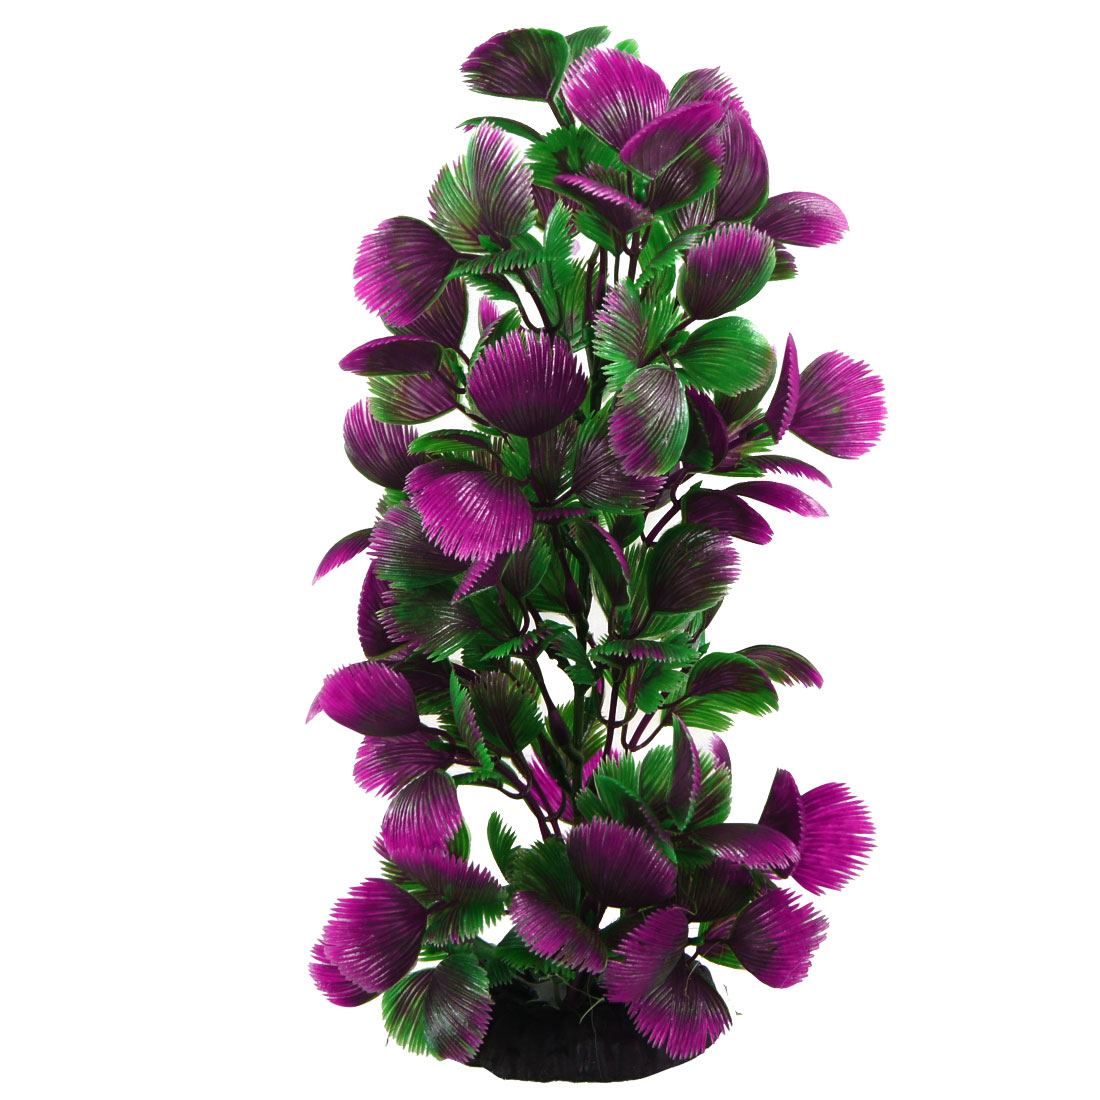 Green Purple Plastic Tree Shape Ornament Water Fish Aquarium Plants 8.7""